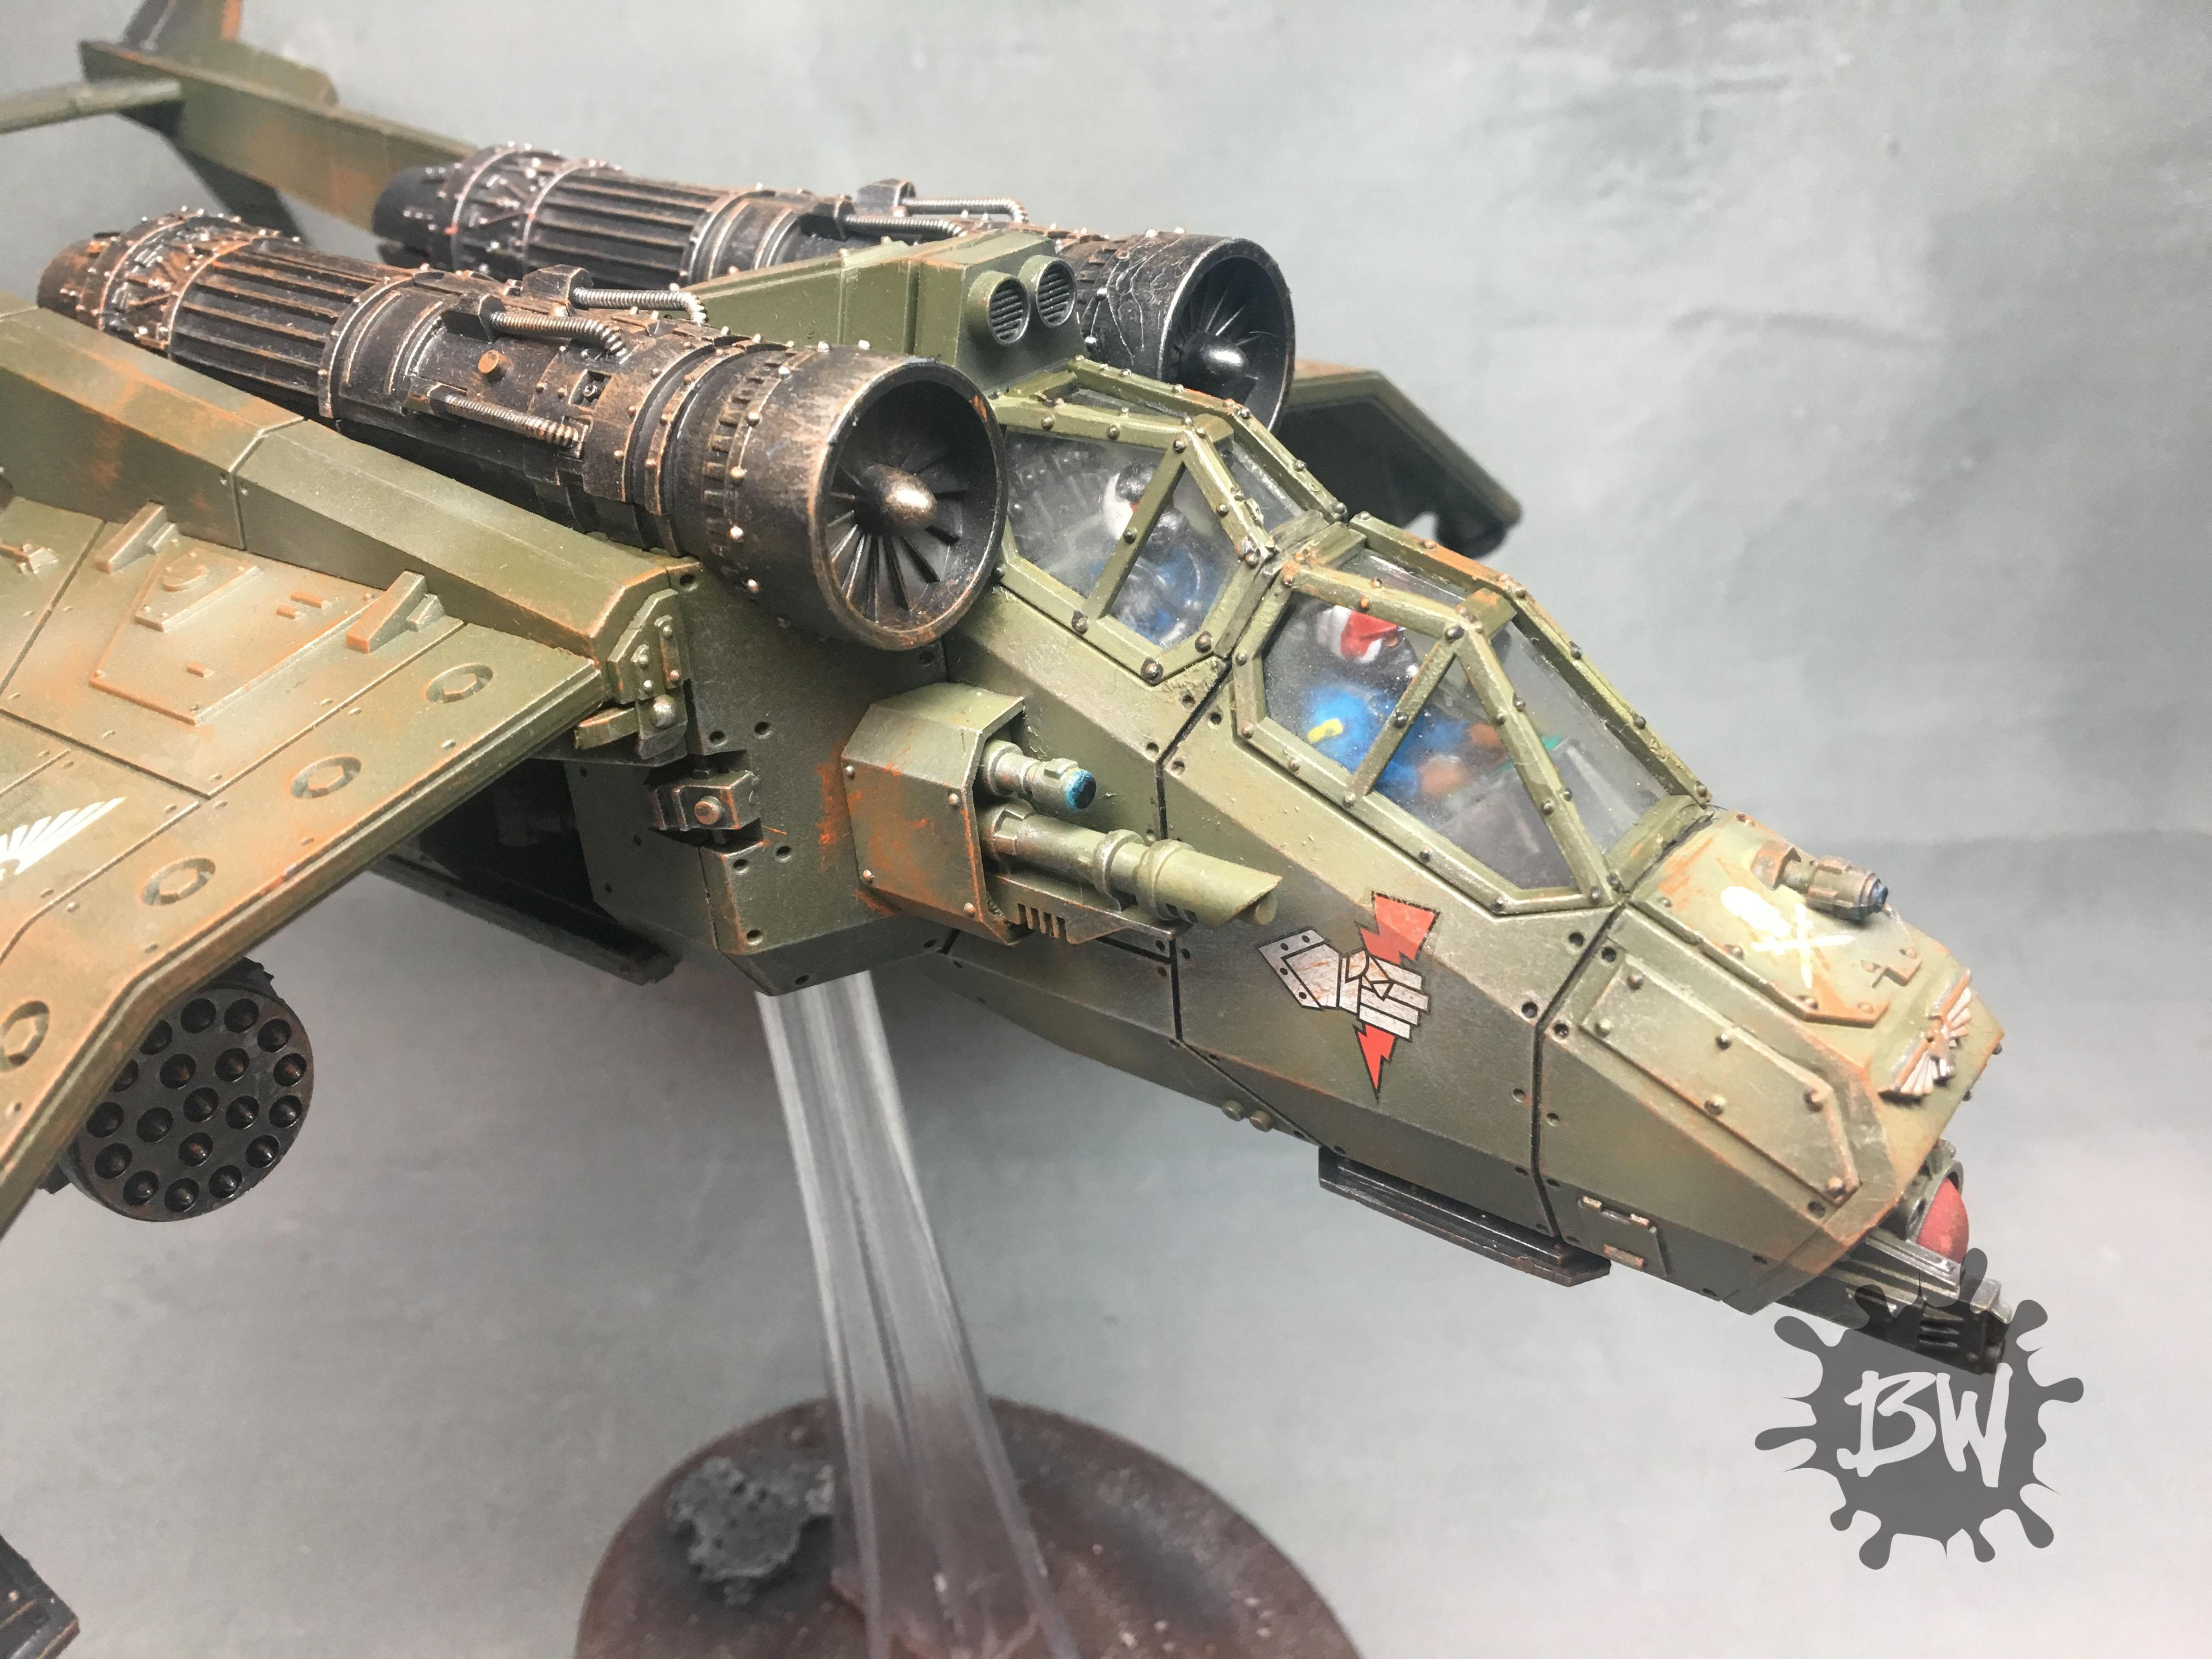 Bw, Flyer, Games Workshop, Imperial Guard, Imperium, Pro-painted, Valkyrie, Warhammer 40,000